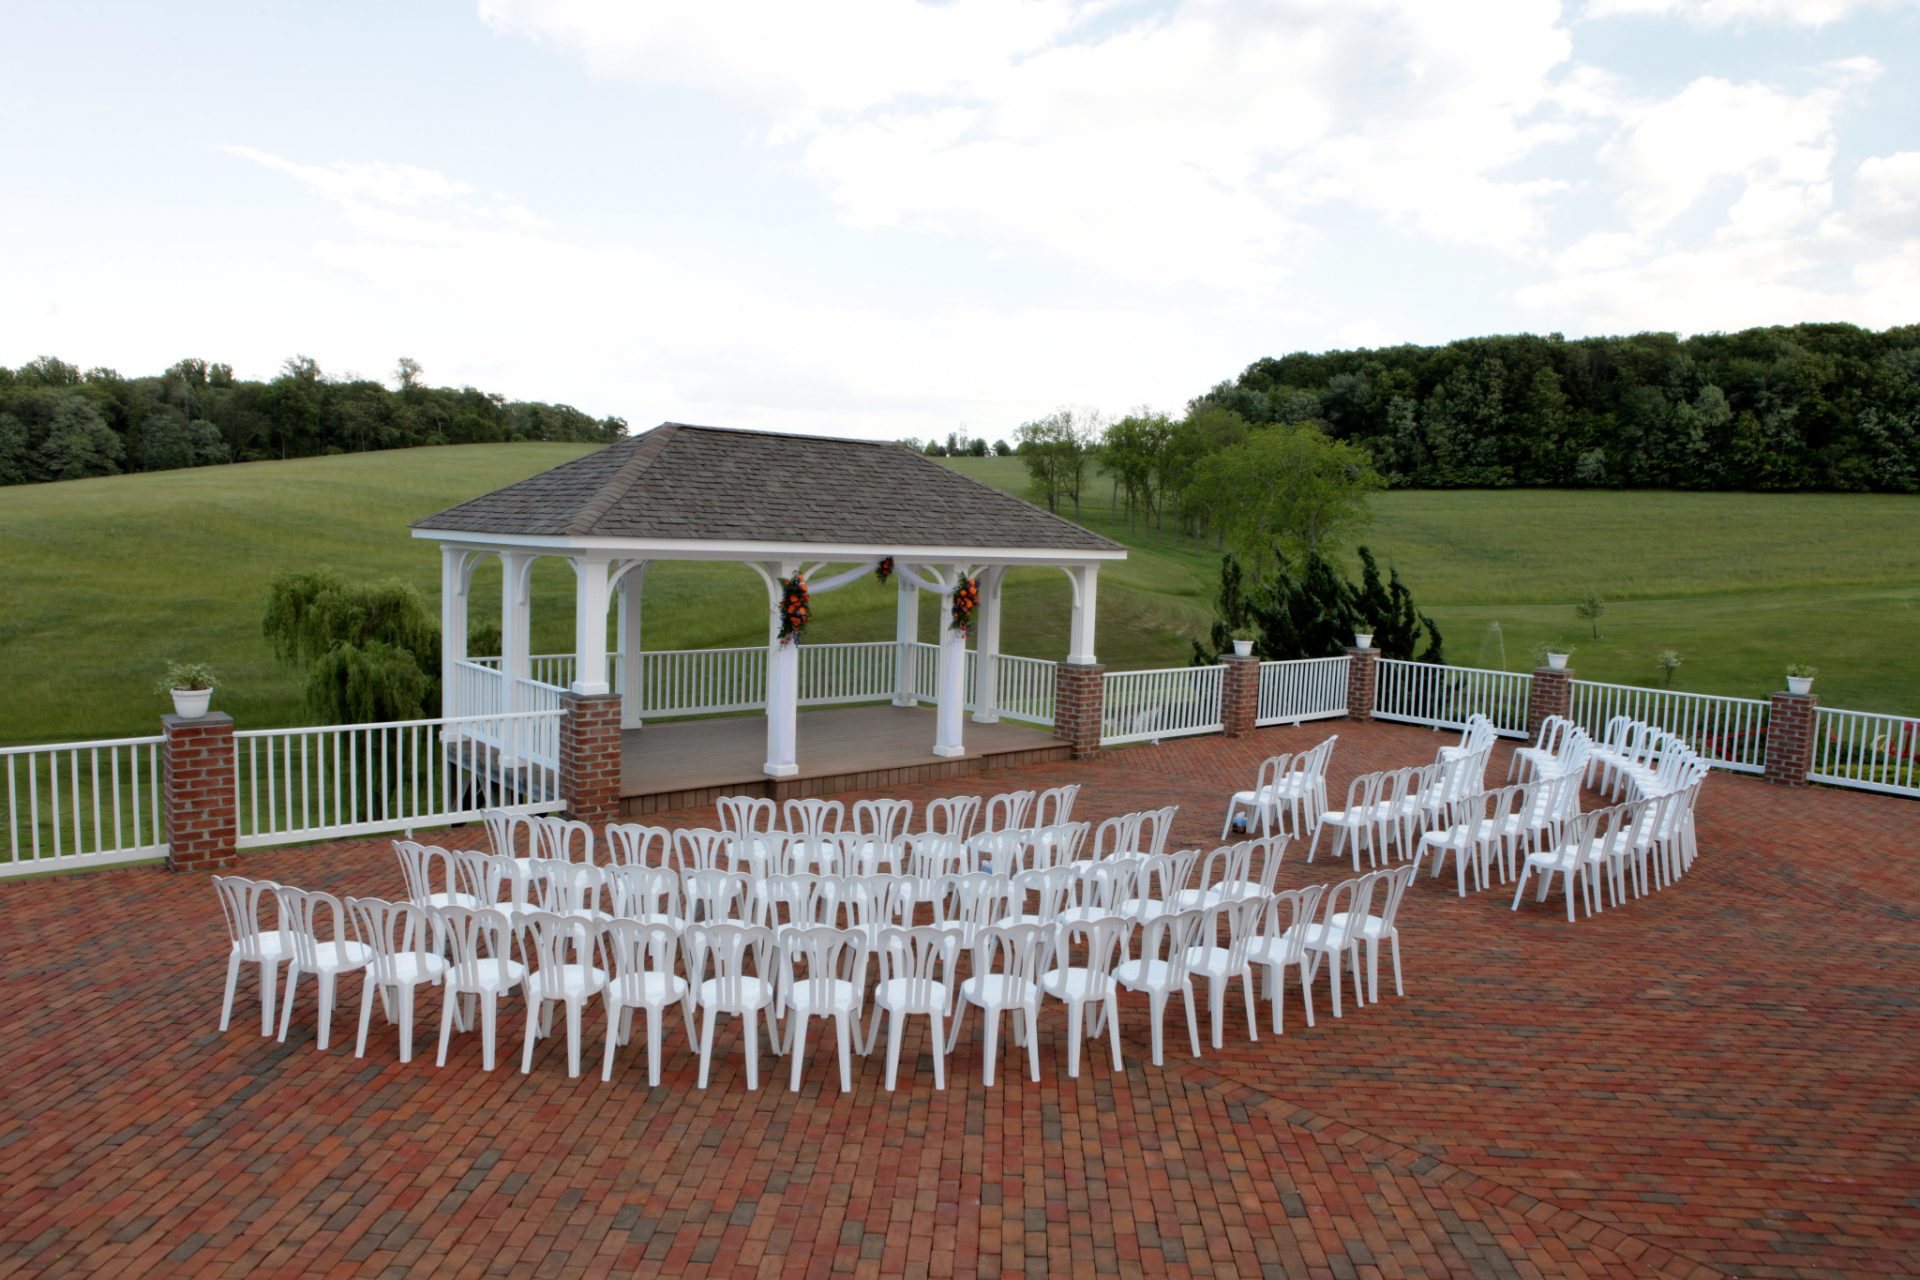 Outdoor wedding ceremony at Morningside Inn is completely private with zero road noise.